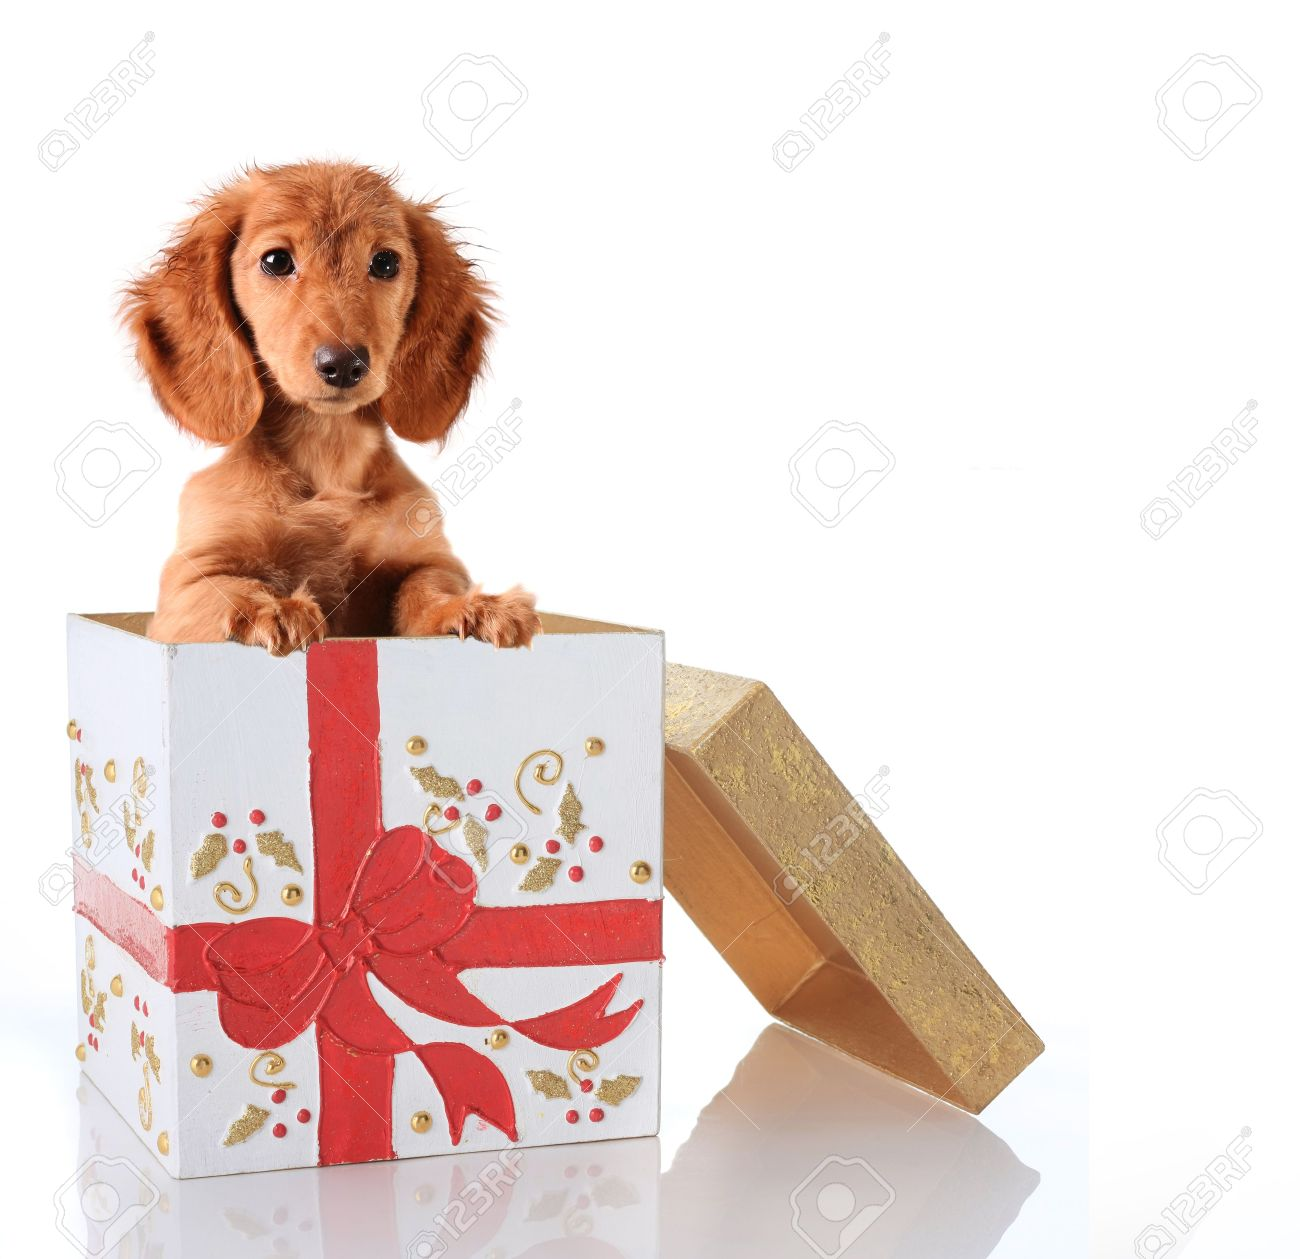 Christmas Puppy In A Gift Box. Stock Photo, Picture And Royalty ...